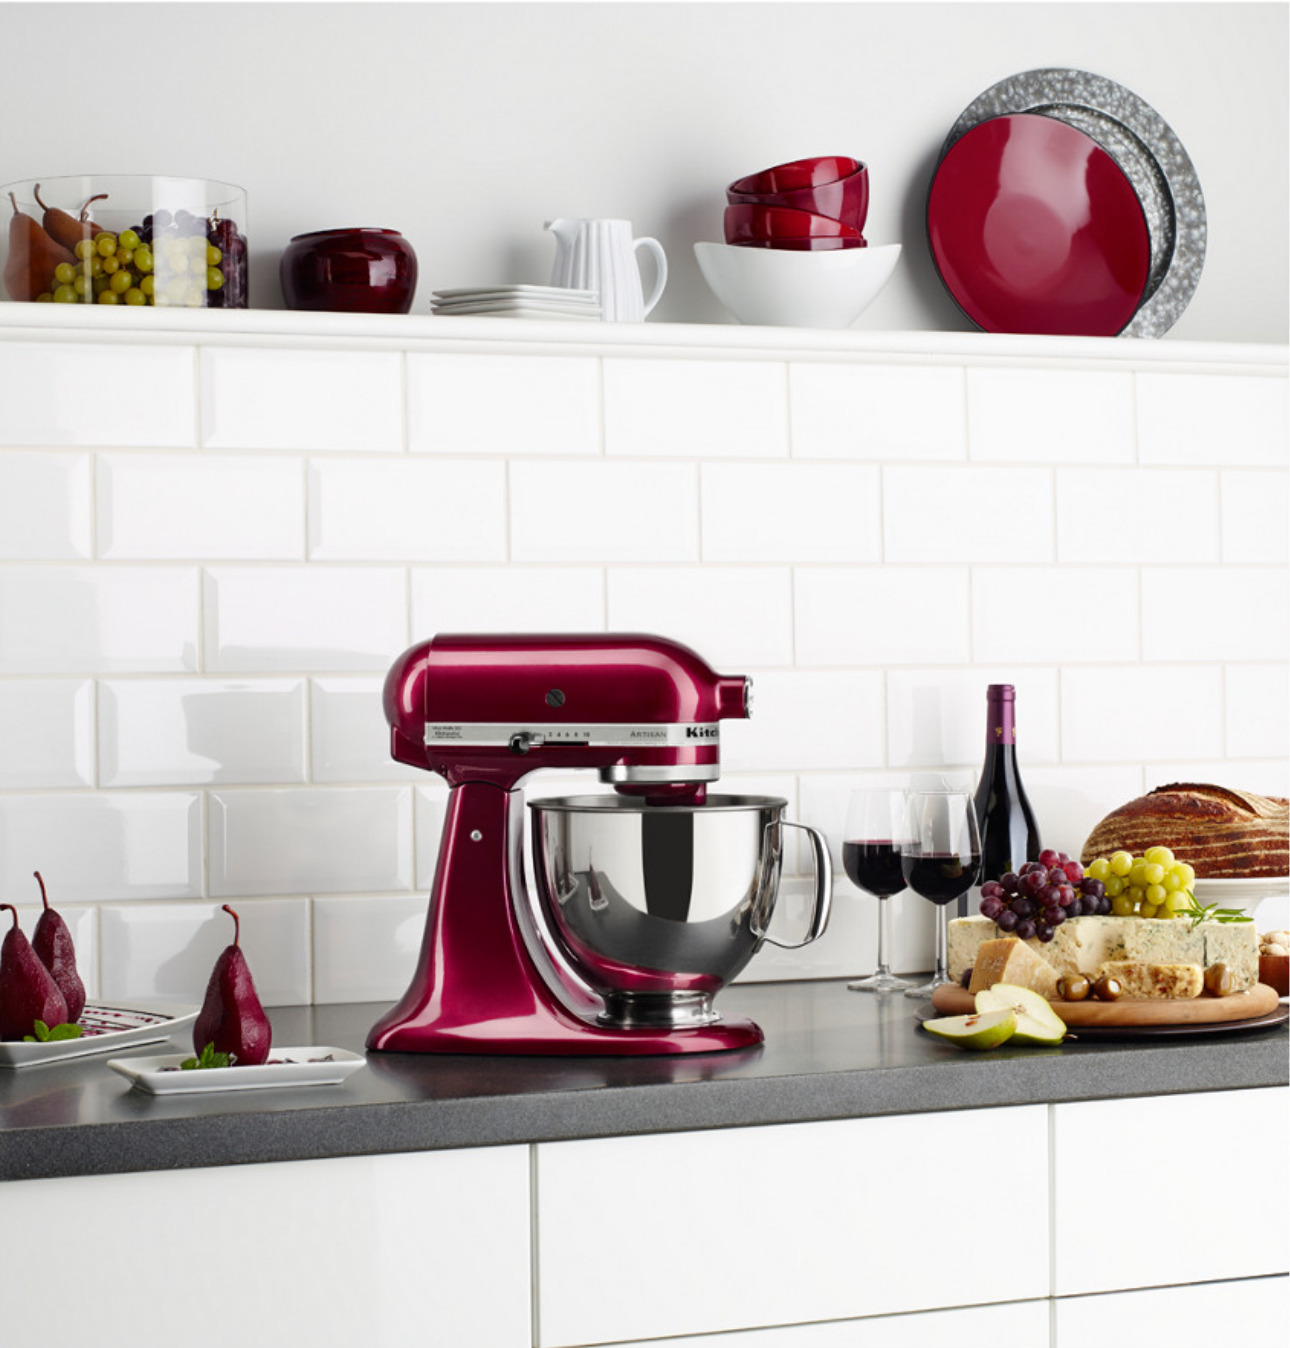 KitchenAid stand mixer in a deep red